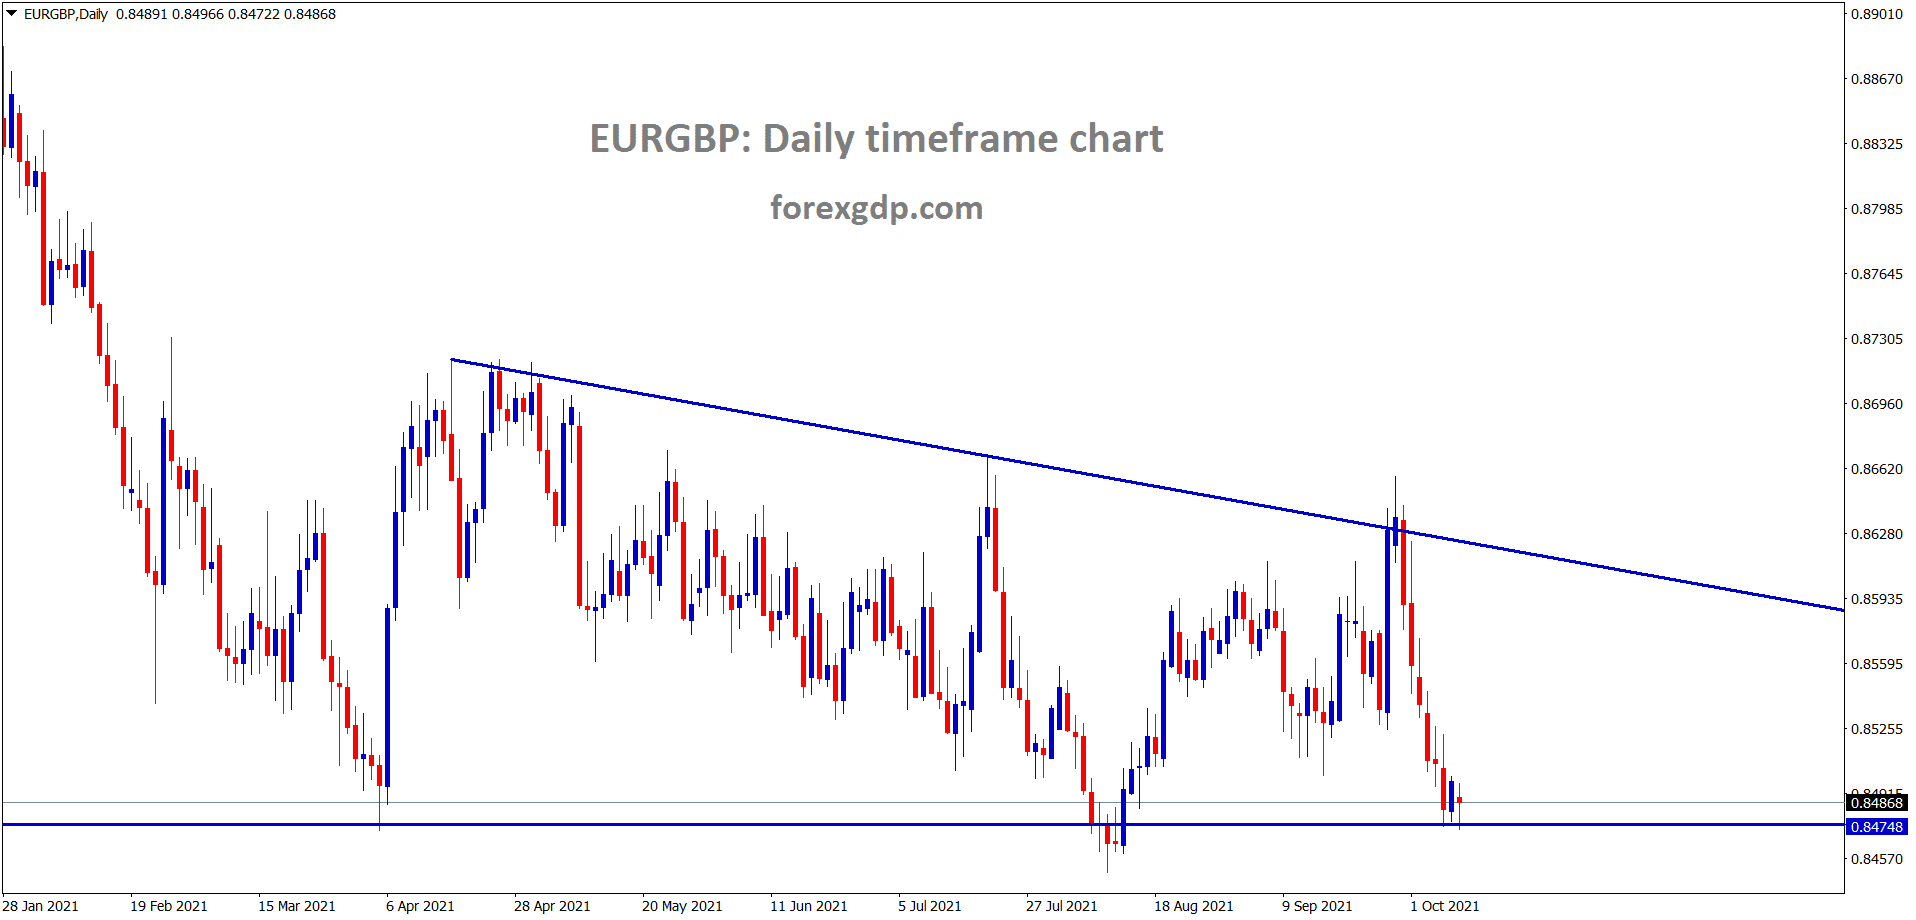 EURGBP is still standing at the low level of the descending triangle pattern